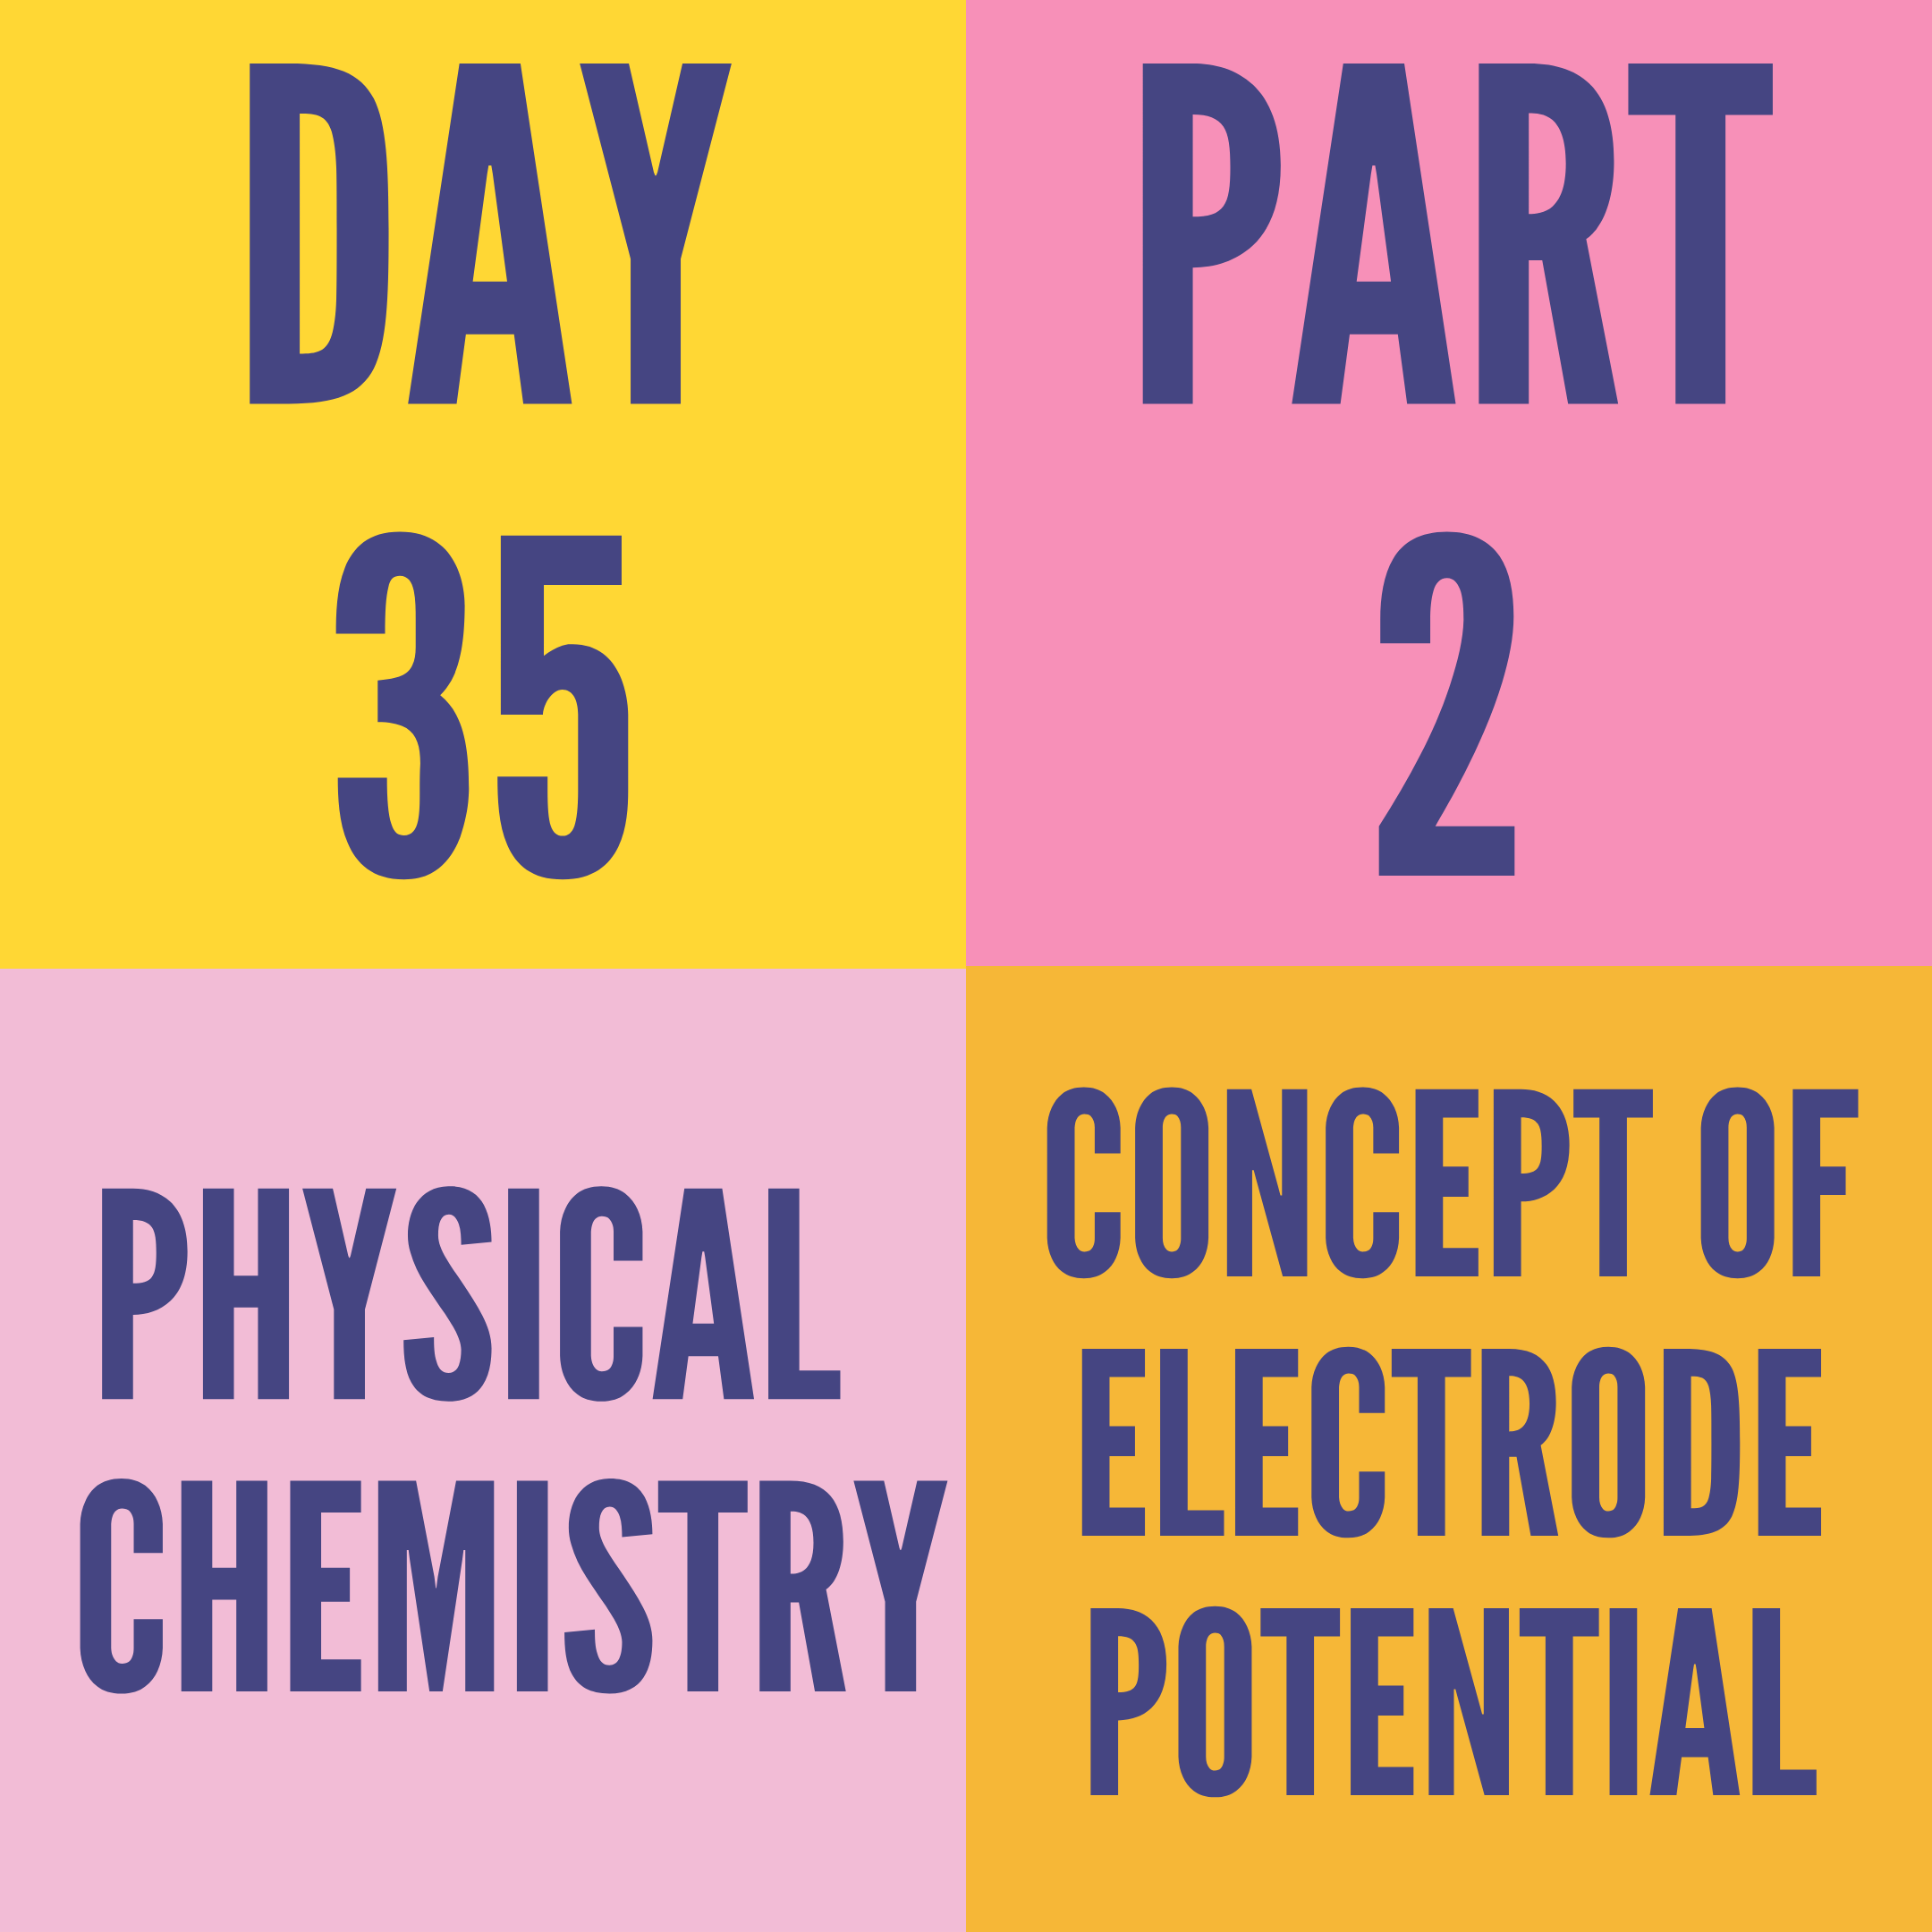 DAY-35 PART-2 CONCEPT OF ELECTRODE POTENTIAL